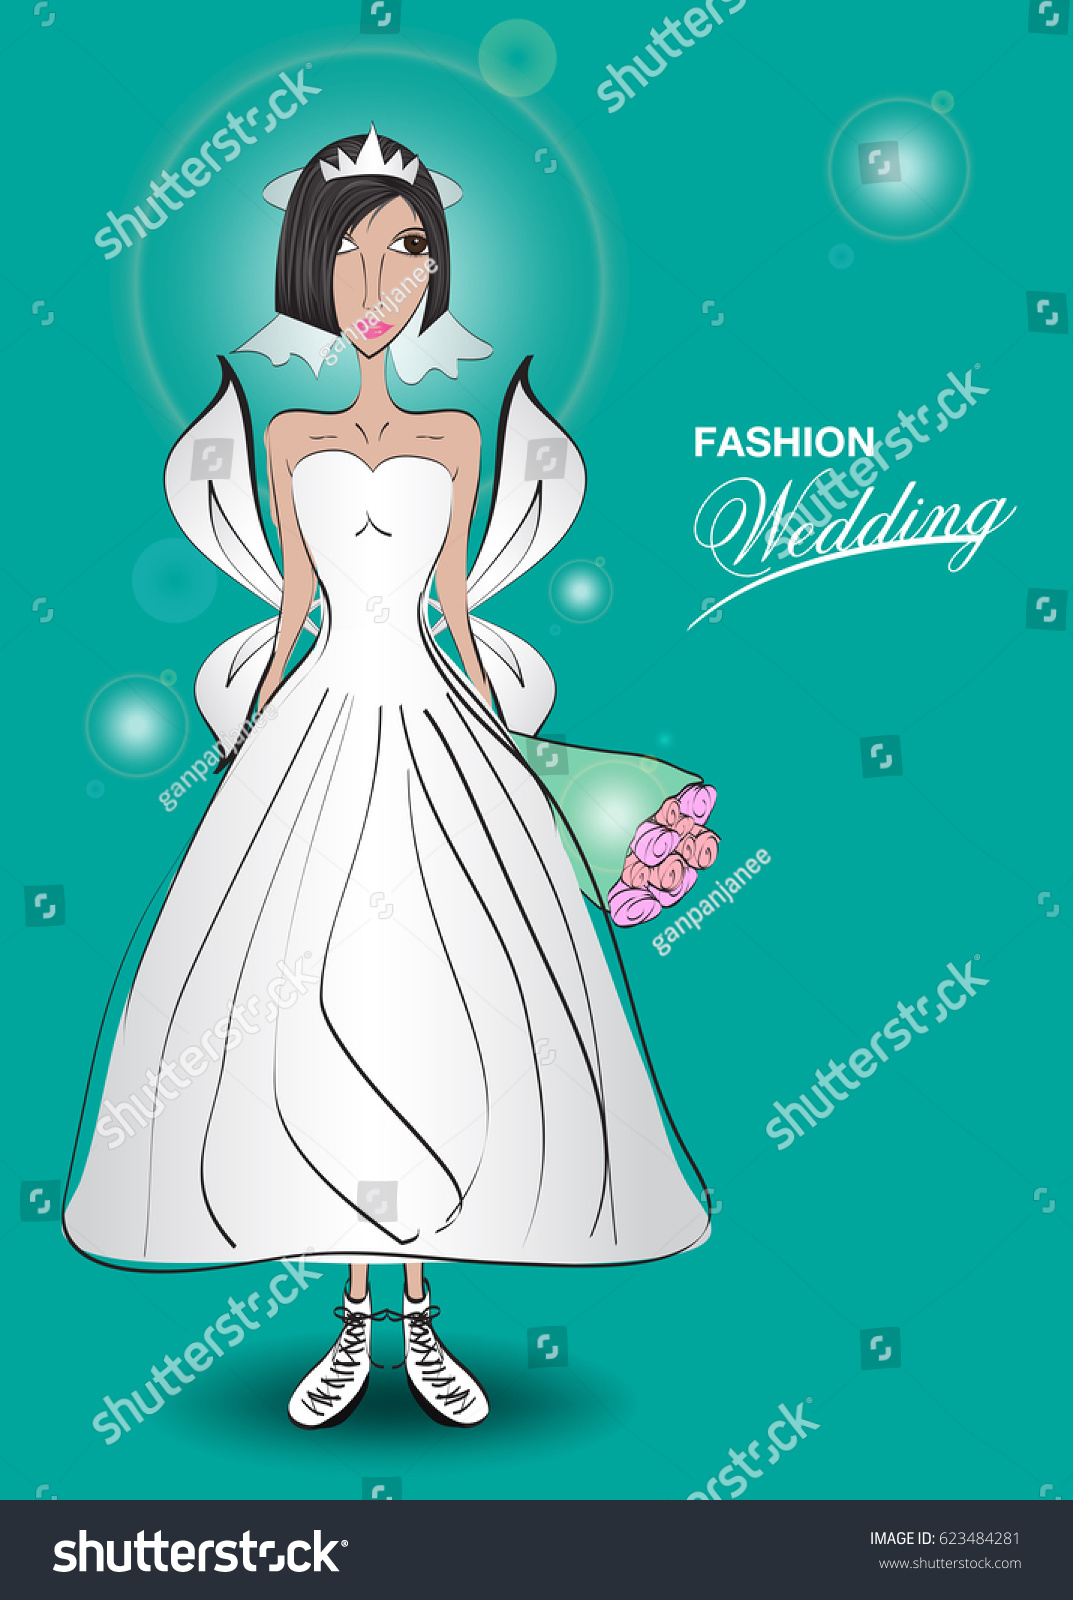 Young Women Wedding Dress Fashion Design Stock Vector HD (Royalty ...